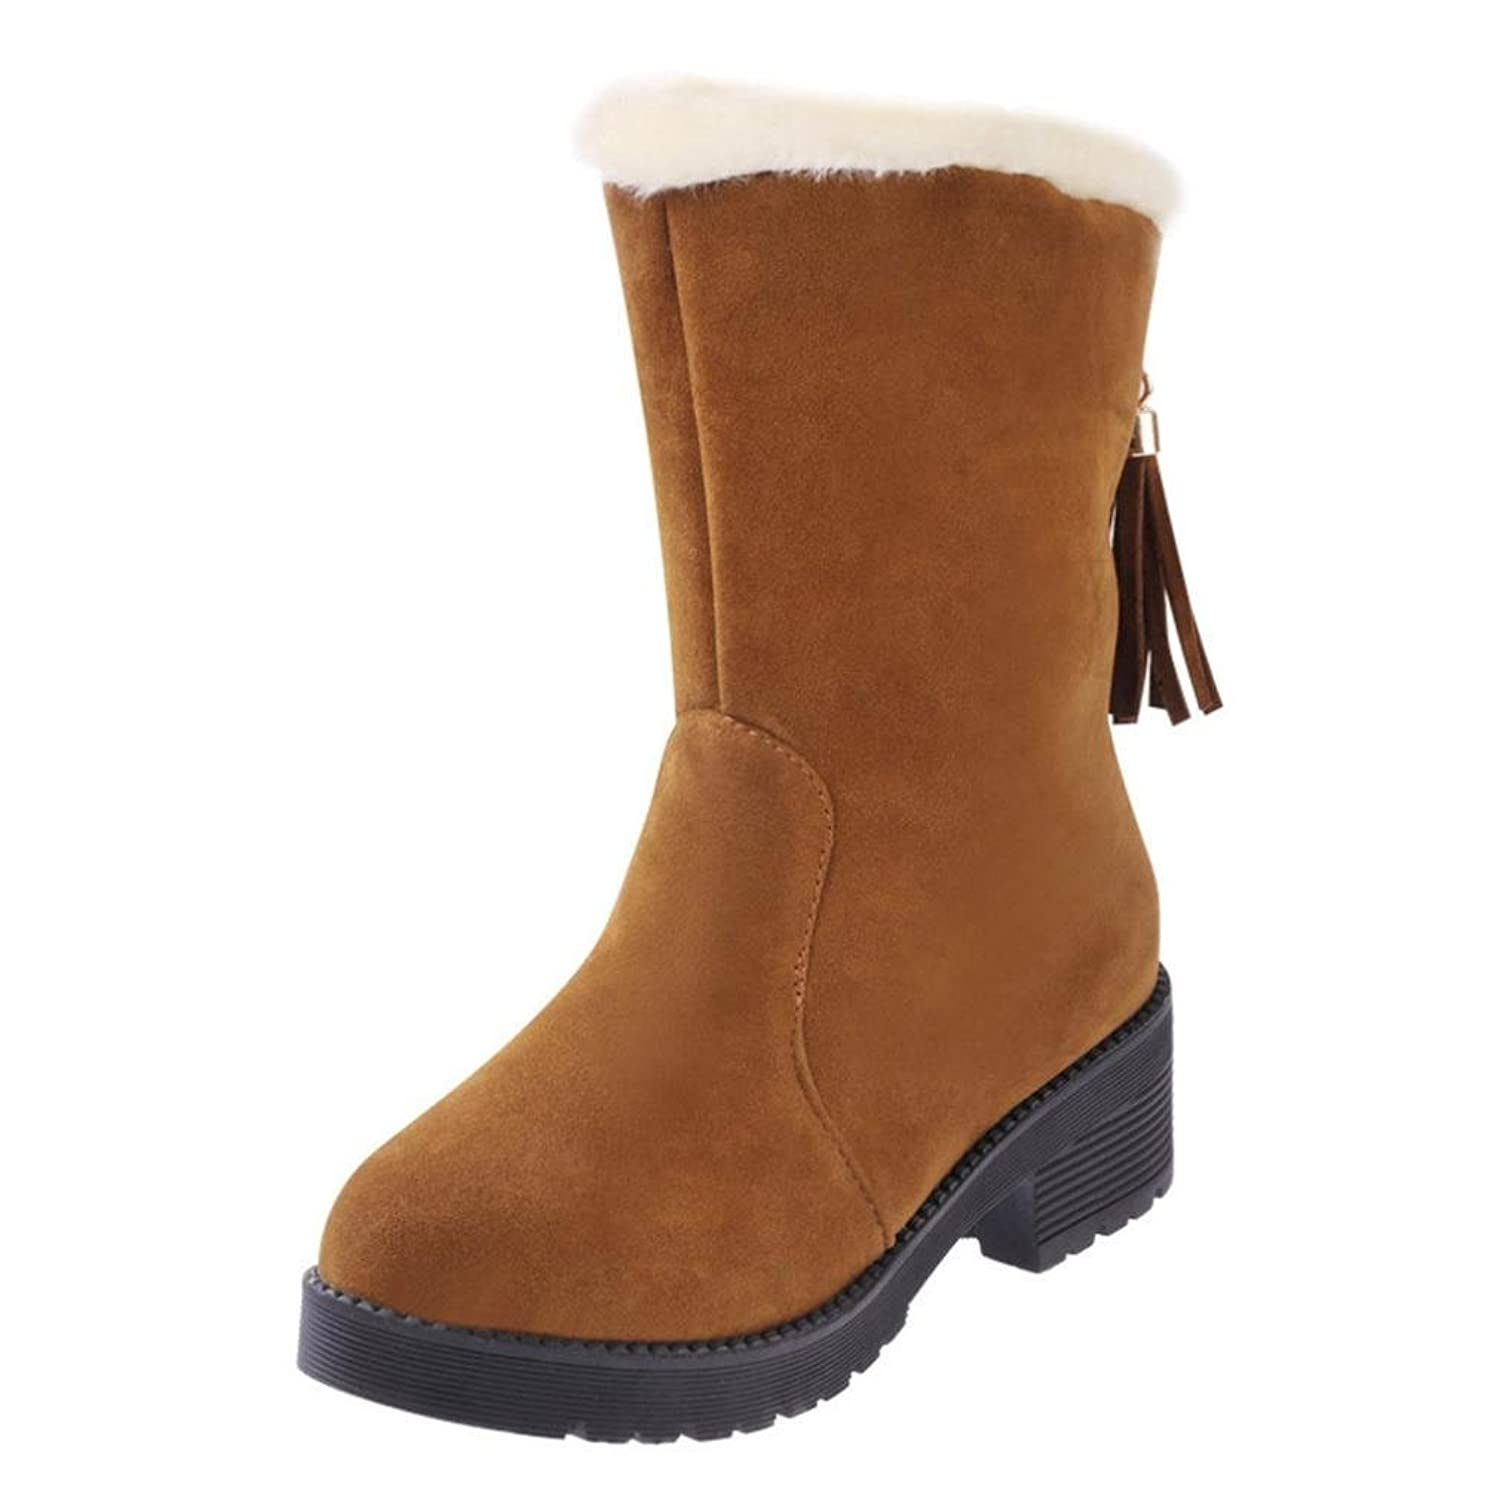 ☆ ▷ ♤ Pretty Fashion Women Winter Warm Flat Snow Boots